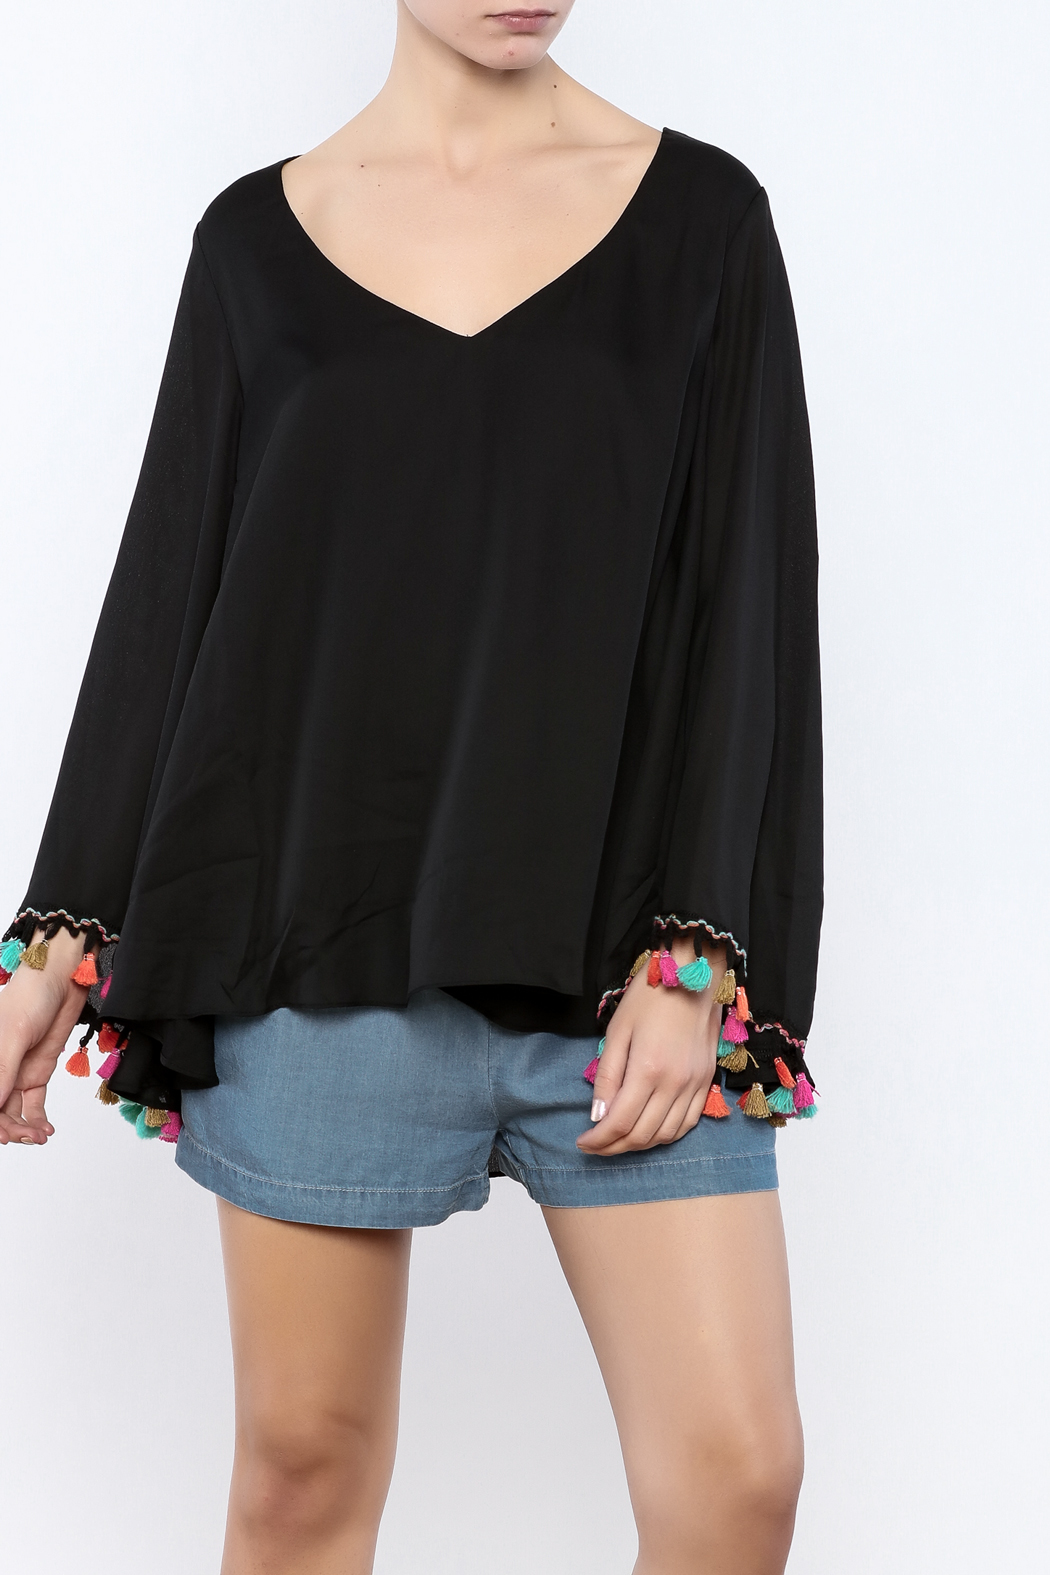 Judith March Festive Bell-Sleeved Top - Main Image